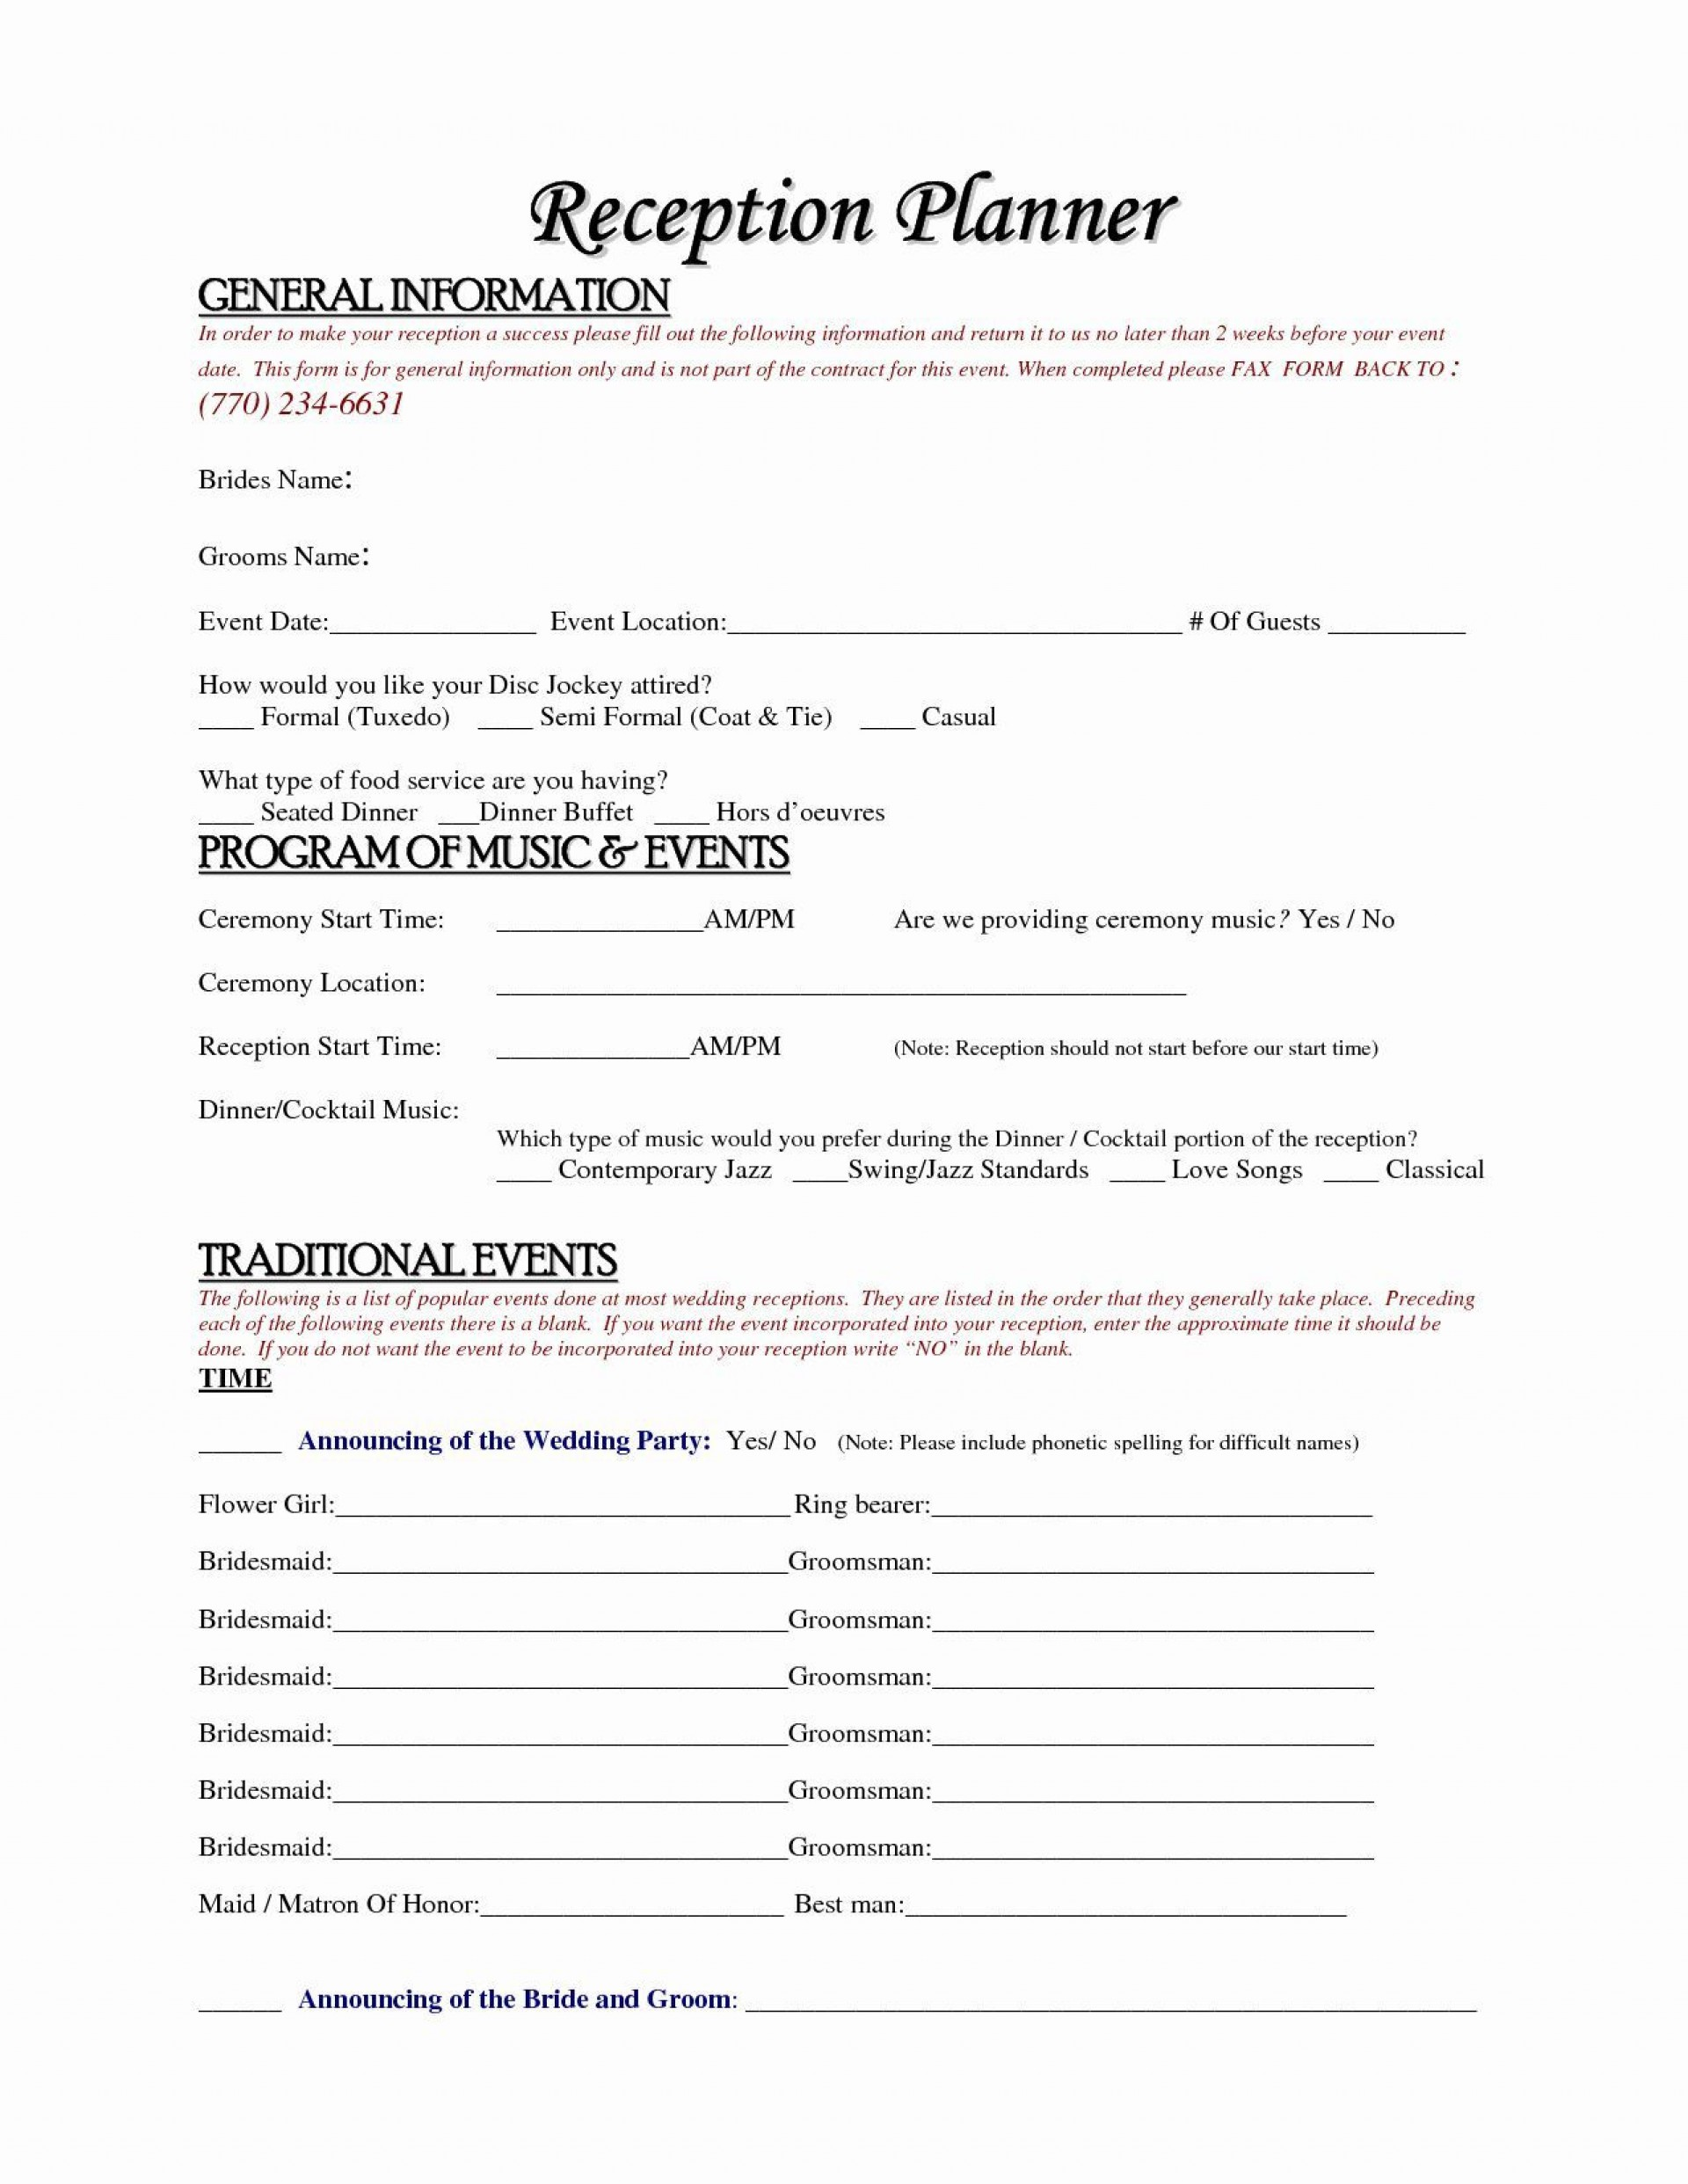 000 Unusual Event Planner Contract Template Design  Free Download Planning1920